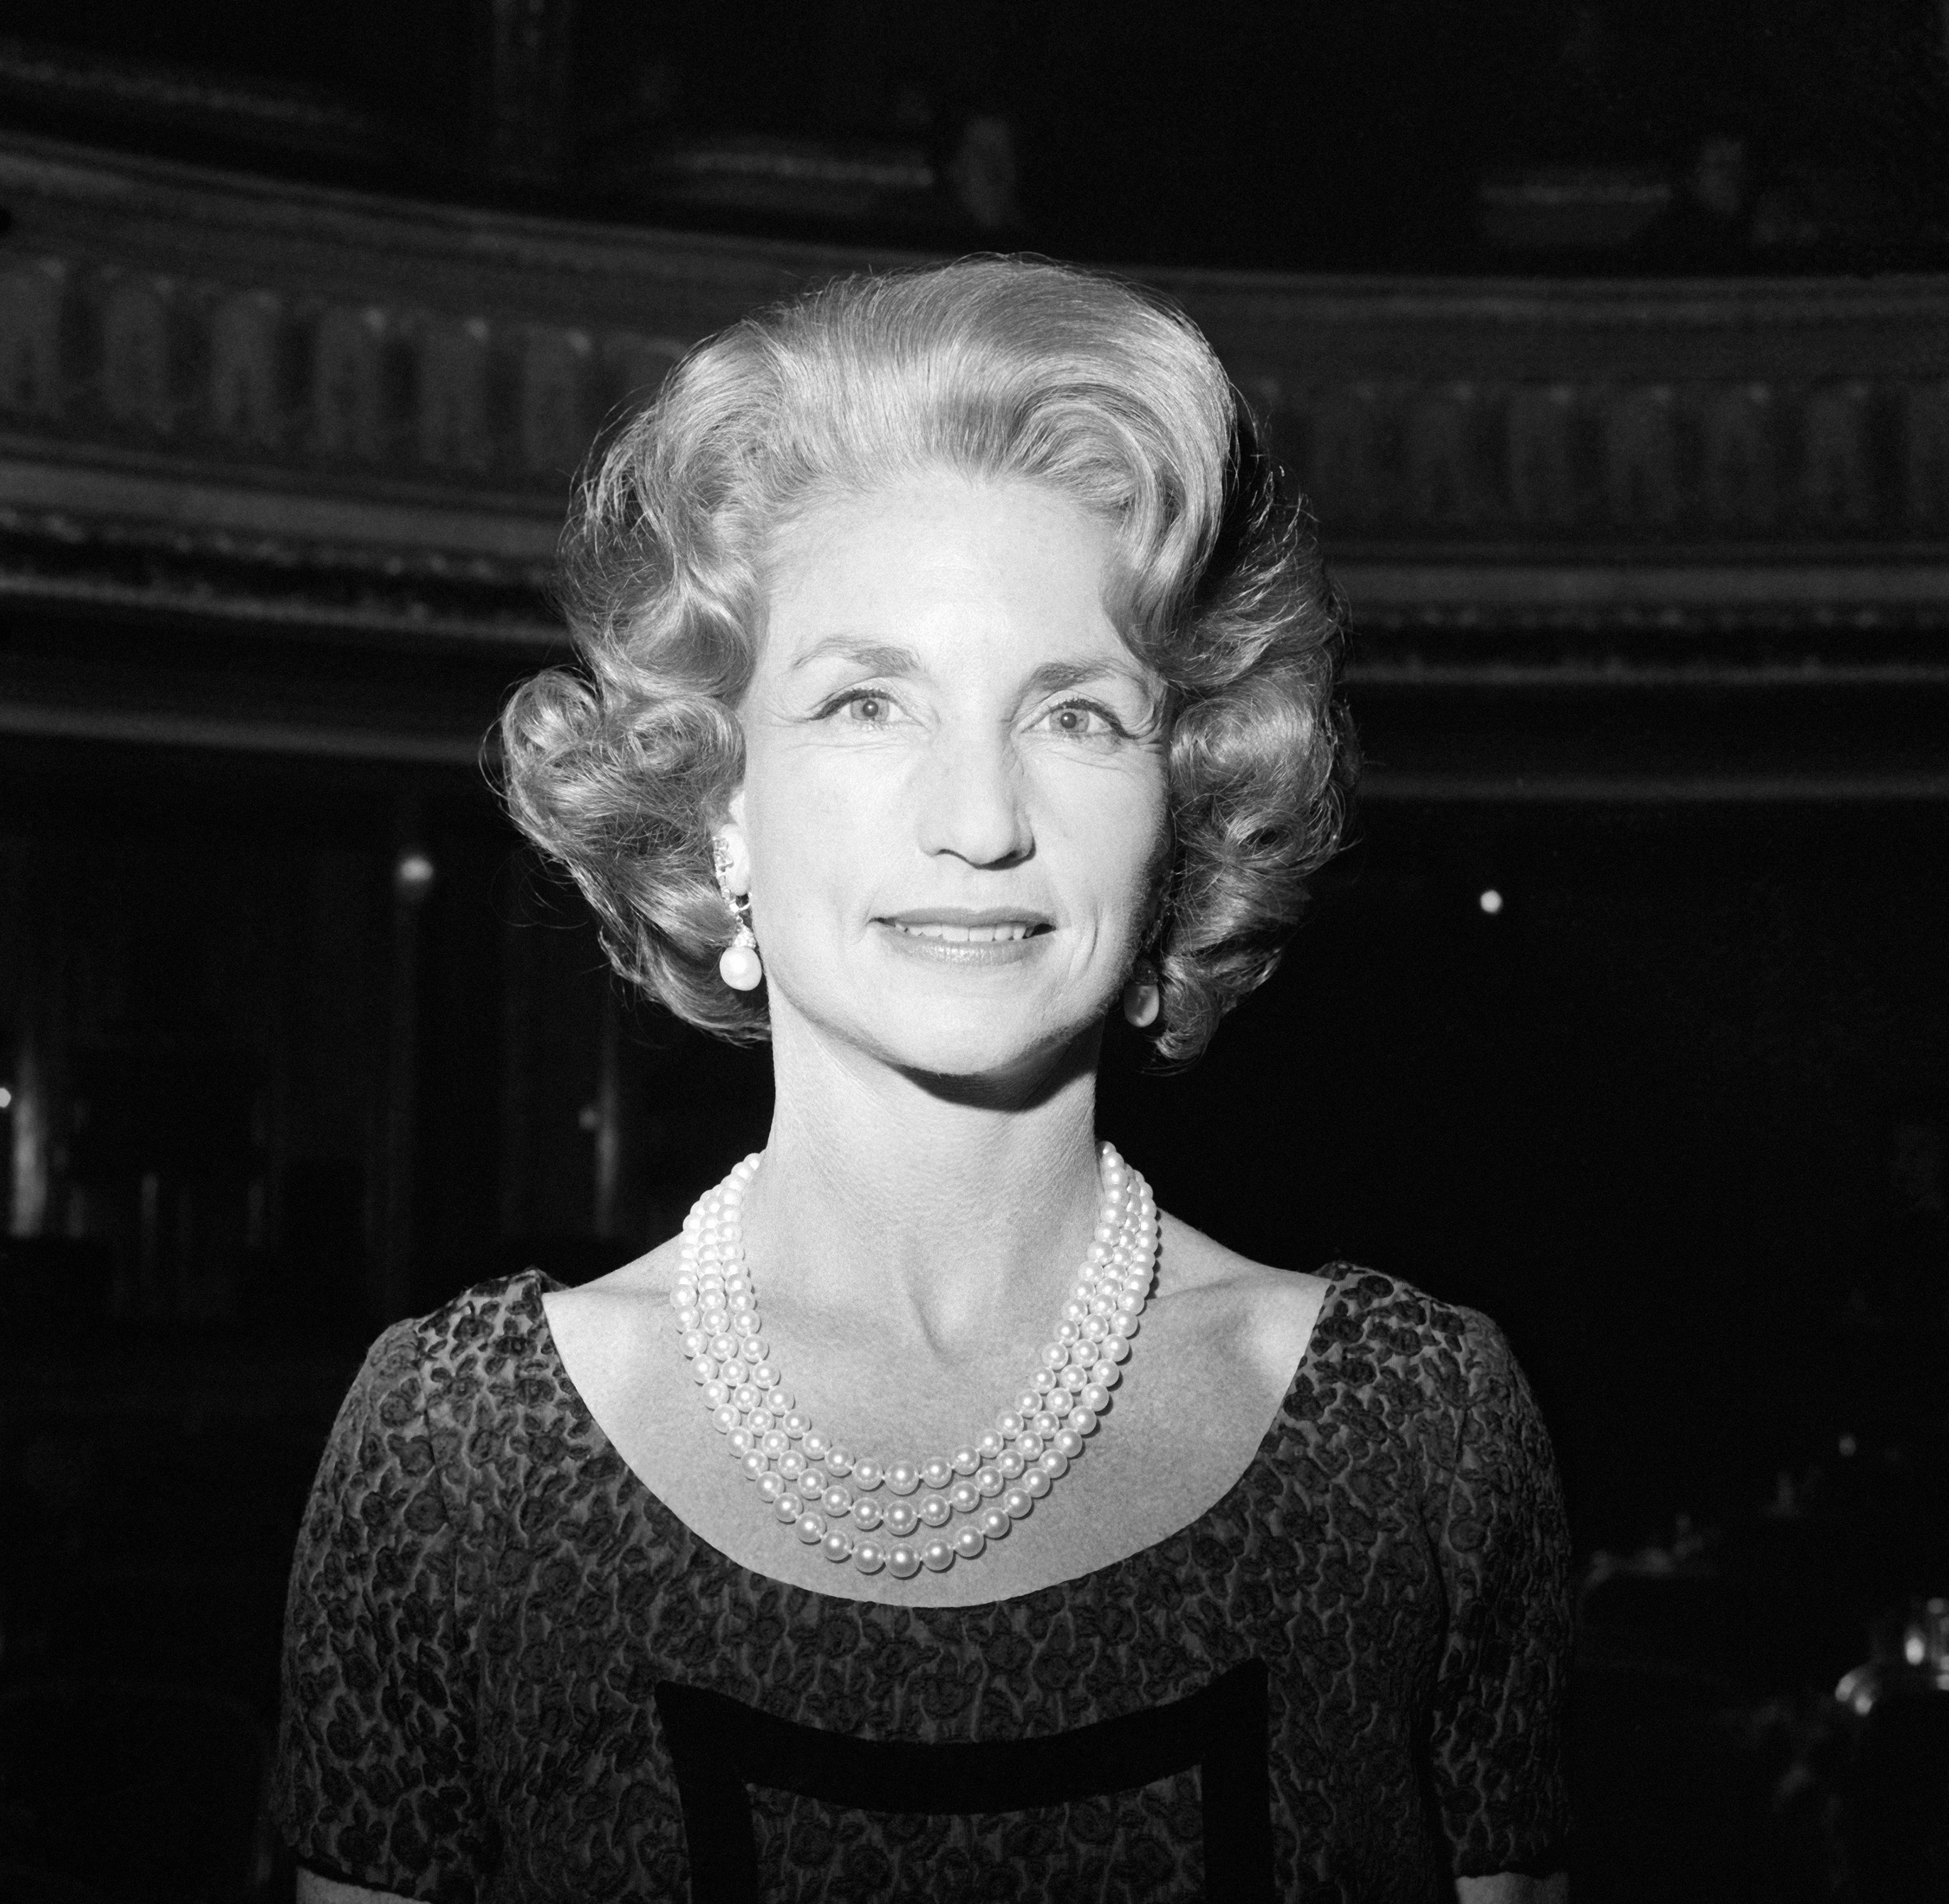 Portrait of Rebekah Harkness, director of the New York Harkness Ballet in New York City on March 12, 1965 | Photo by Keystone-France/Gamma-Rapho via Getty Images